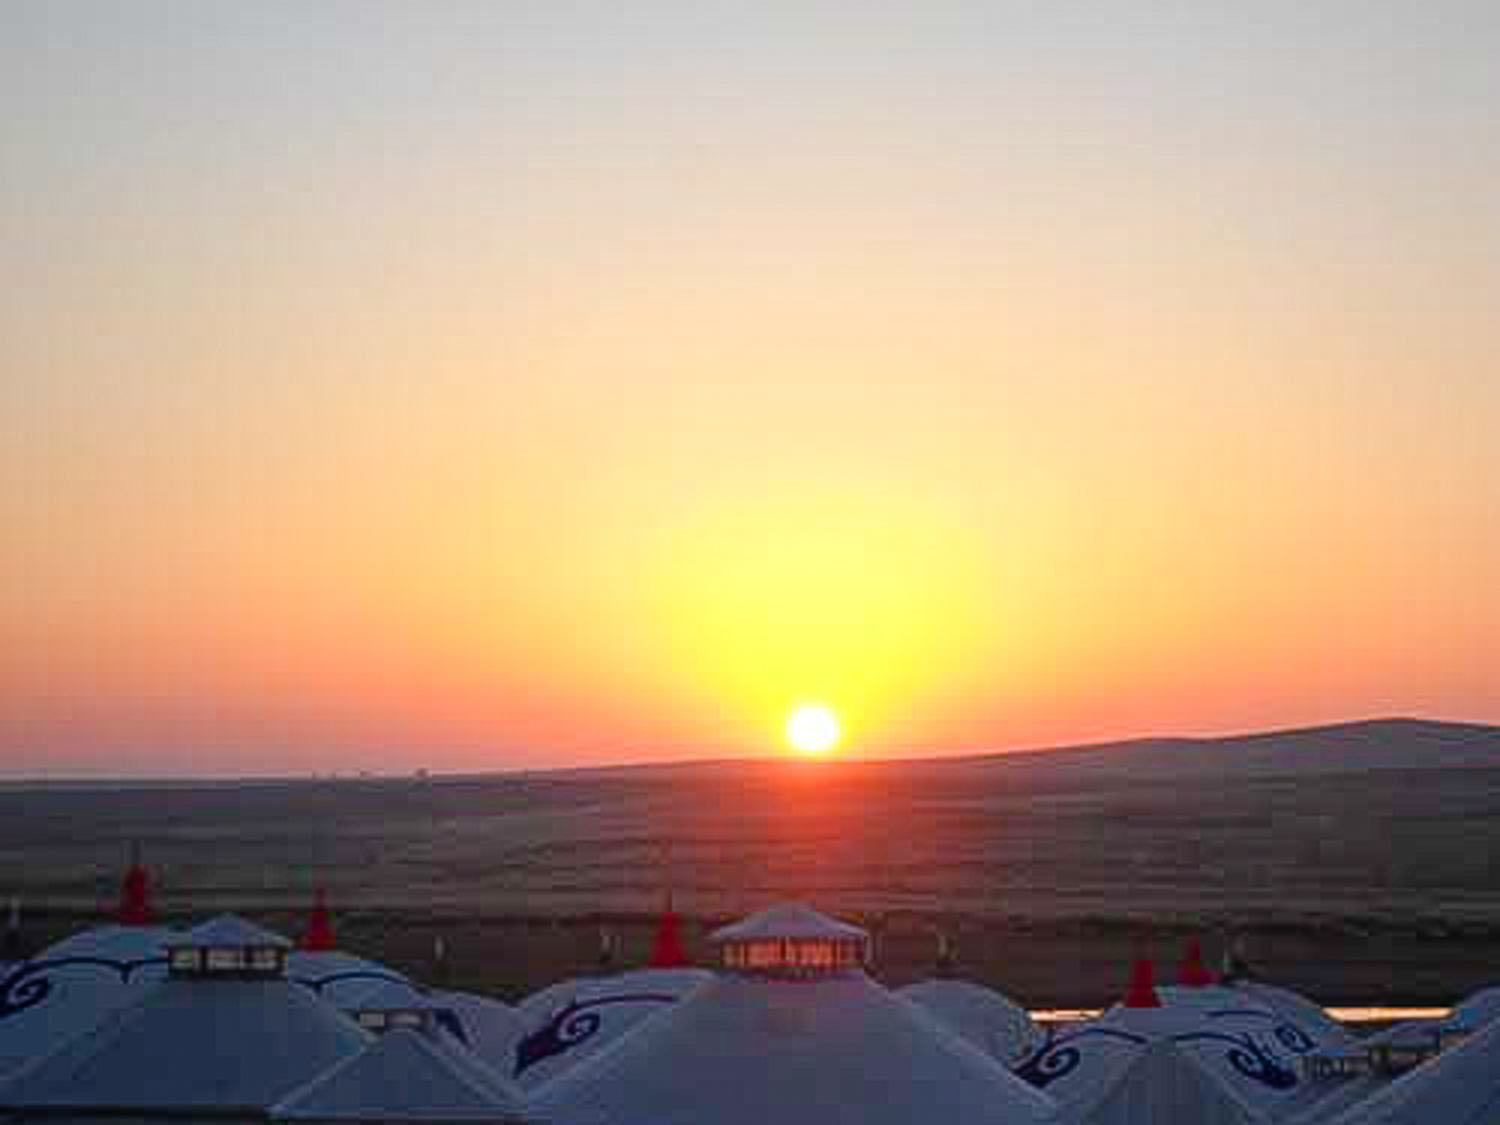 Sunrise over the steppes in Inner Mongolia, China during a mini-vacation with a colleague.